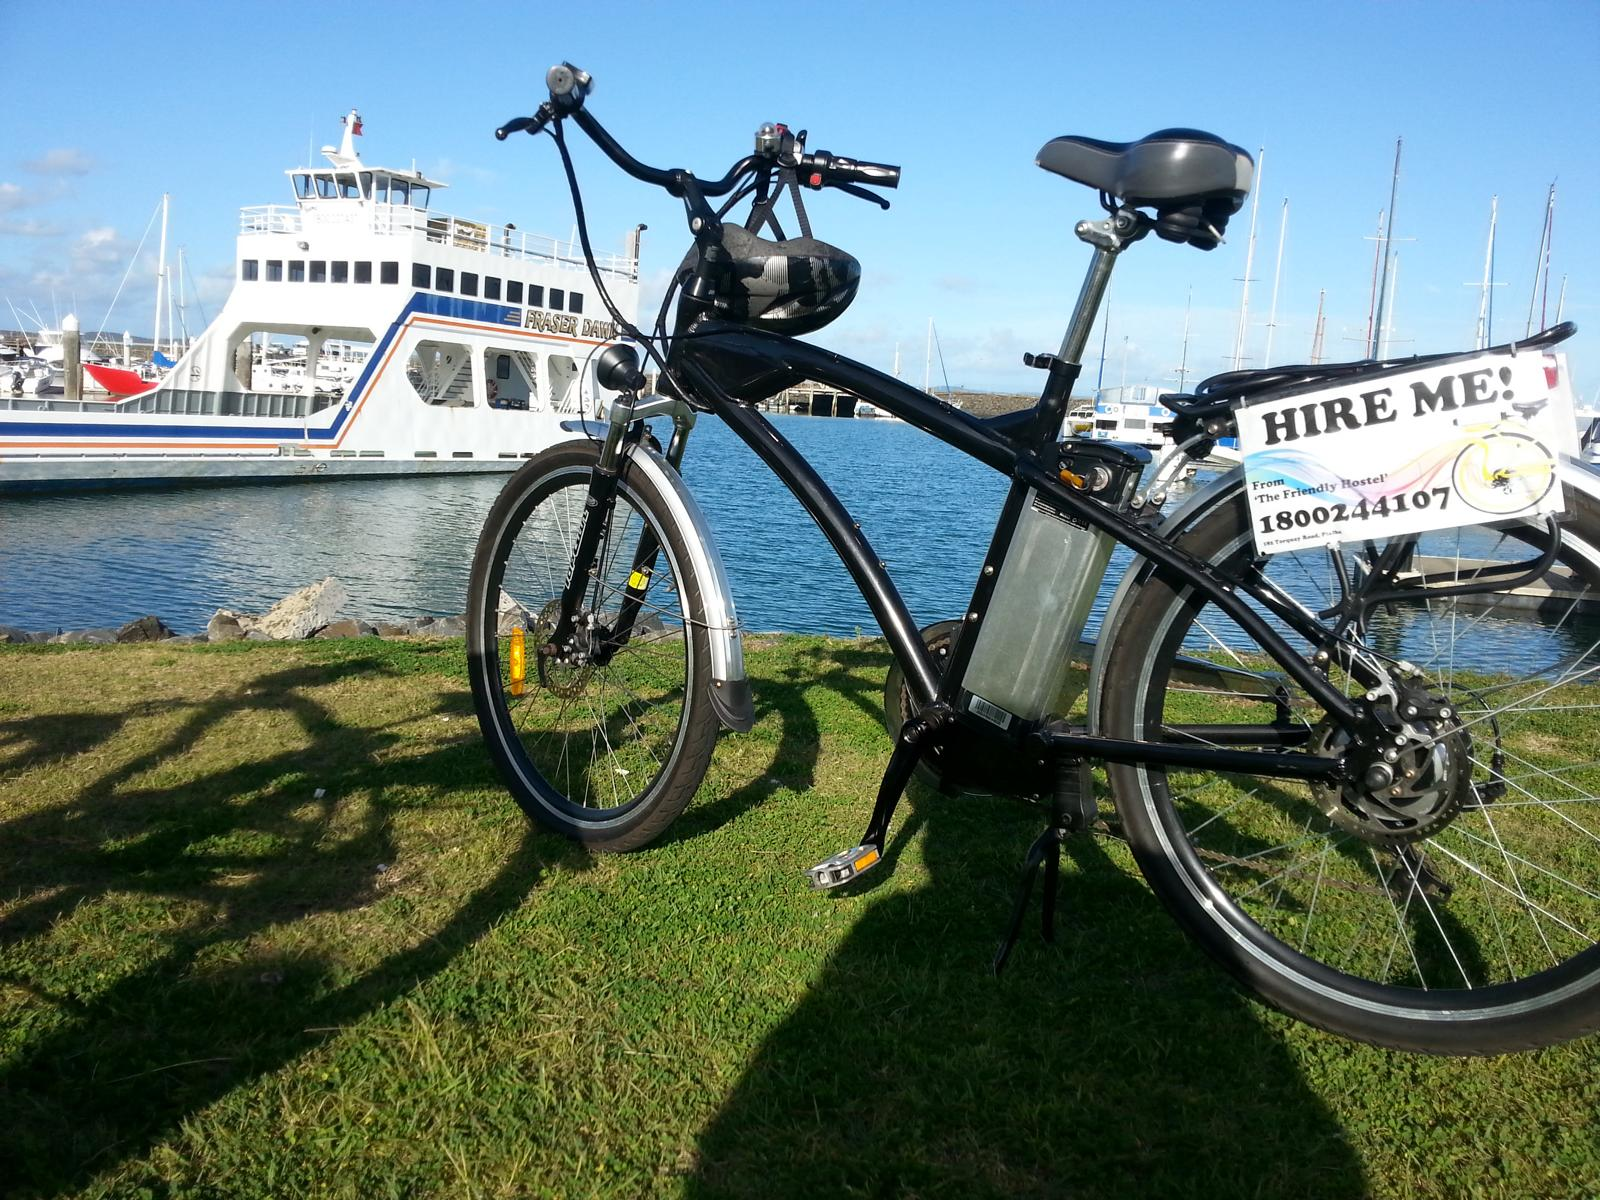 The Friendly Hostel, Electric Bike Hire, Hervey Bay, Queensland, Australia 3